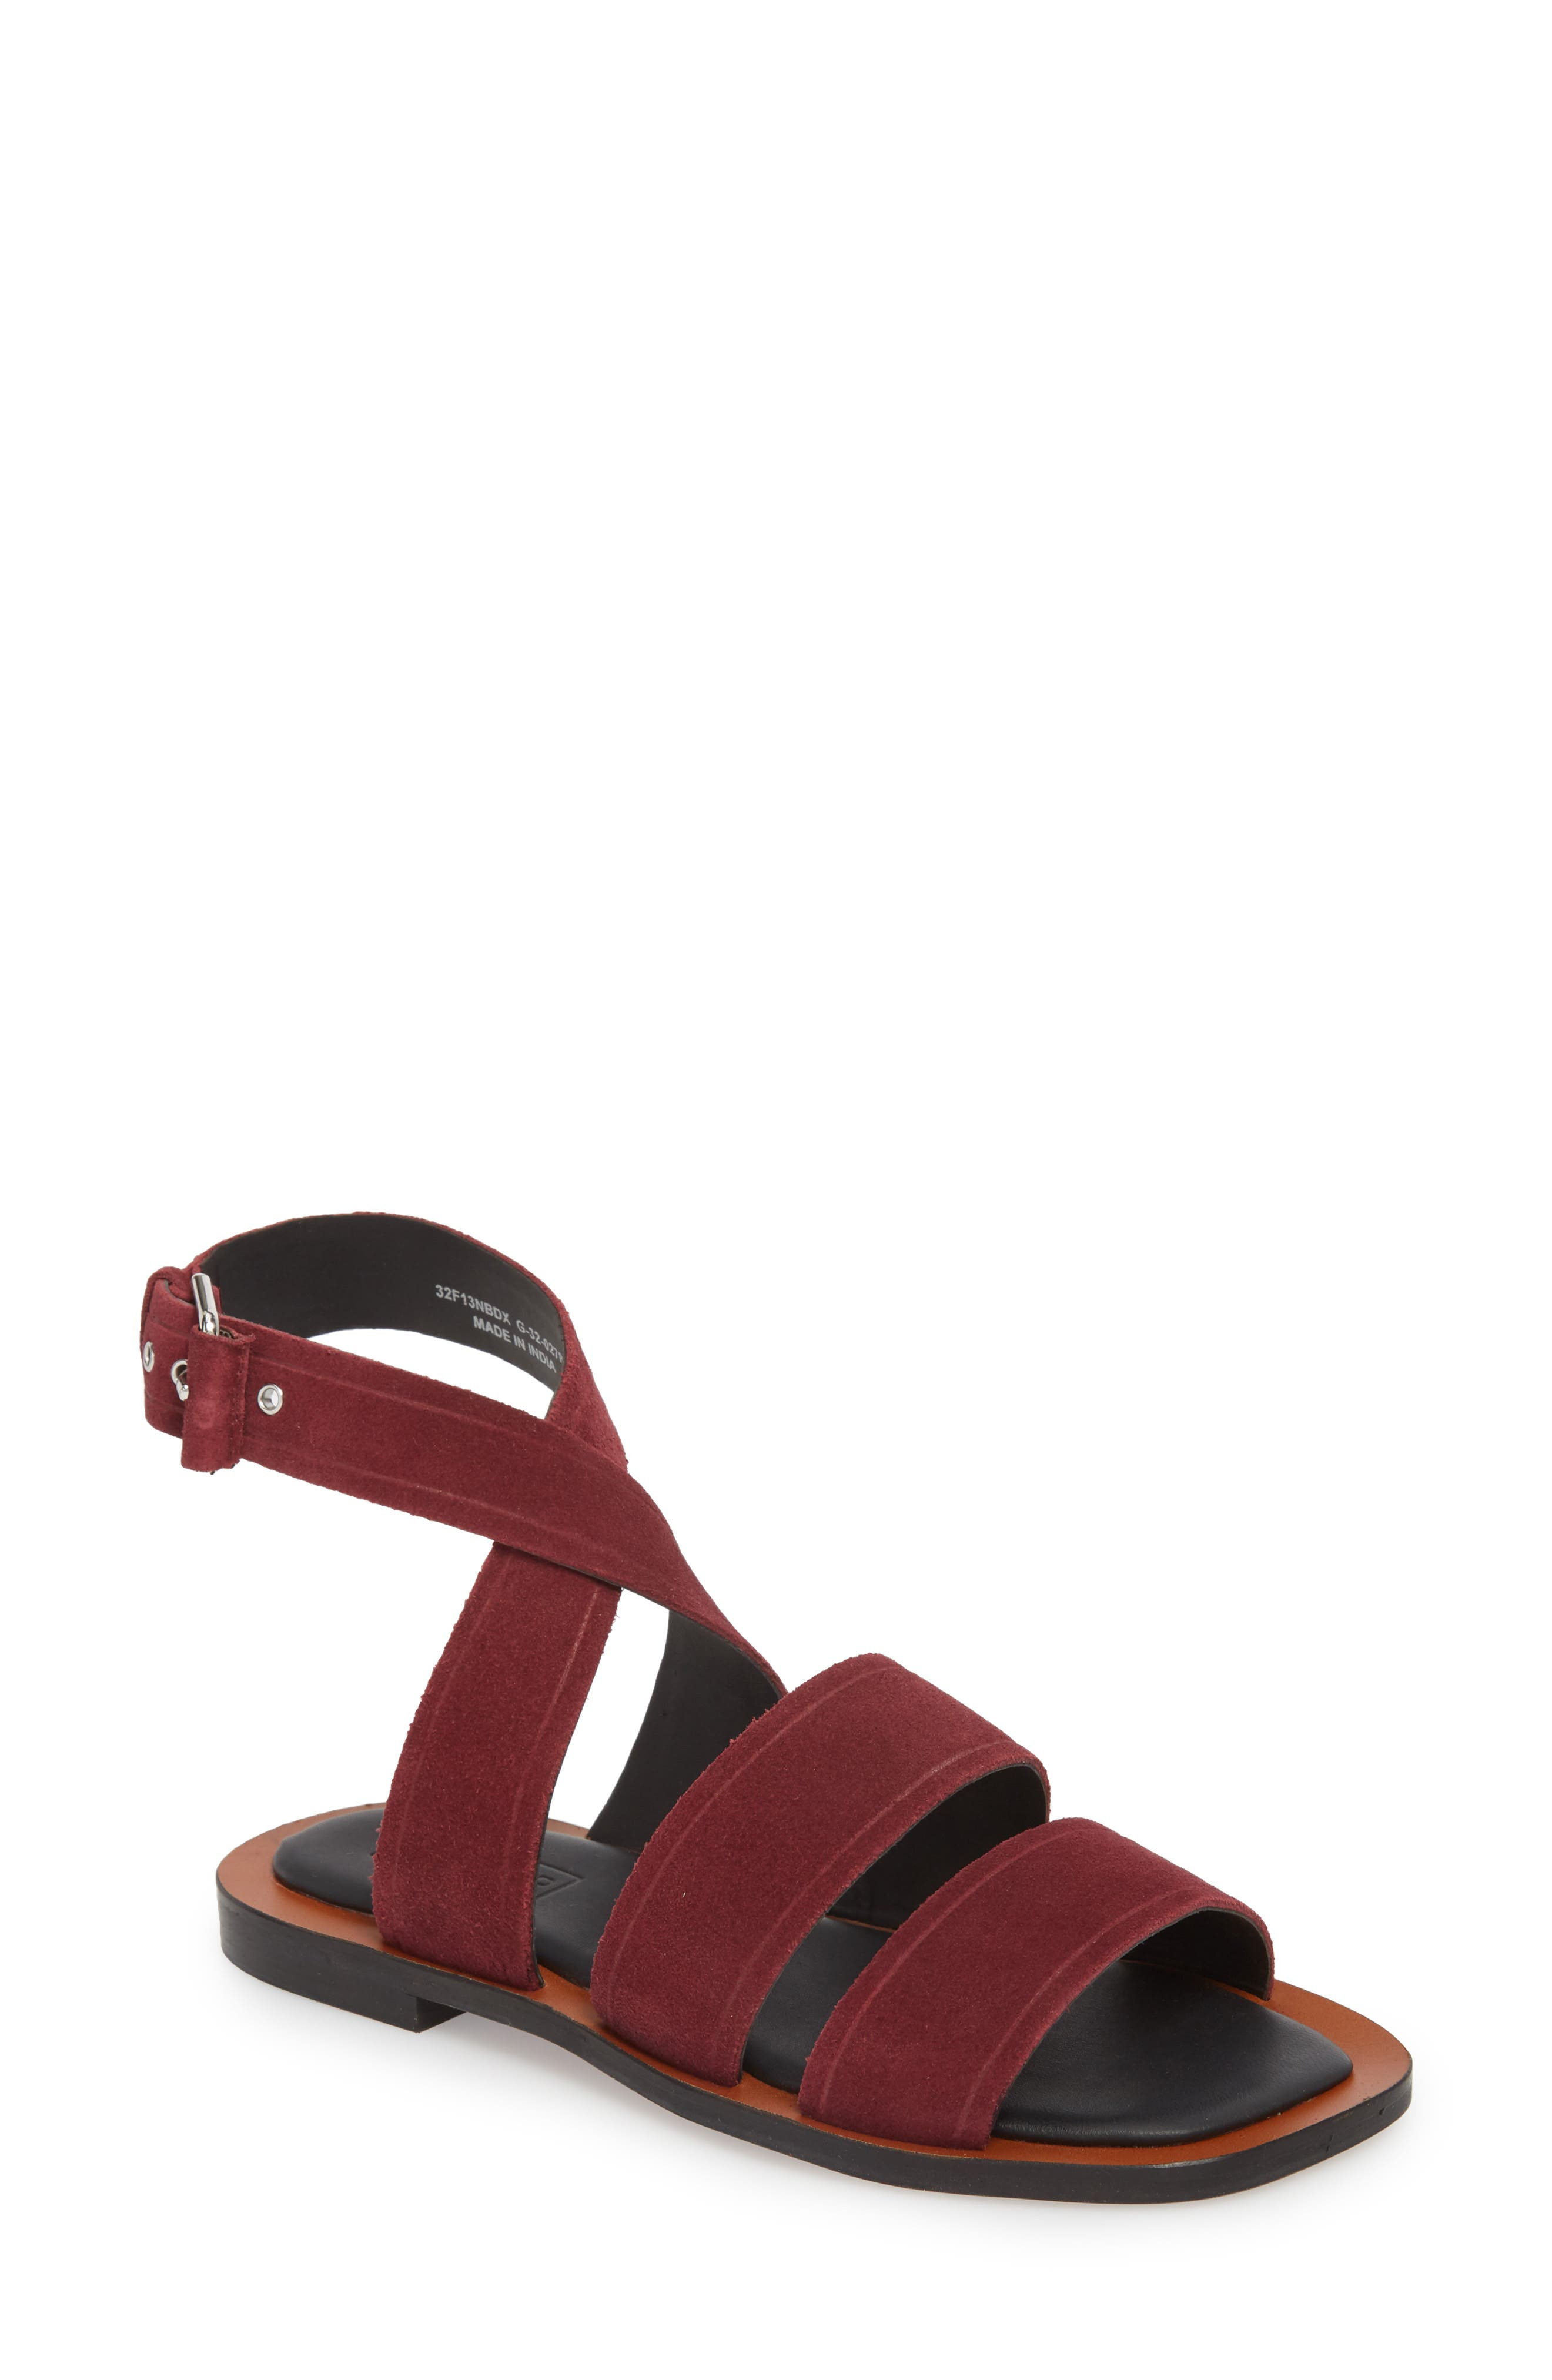 Fume Strappy Sandal,                         Main,                         color, Burgundy Multi